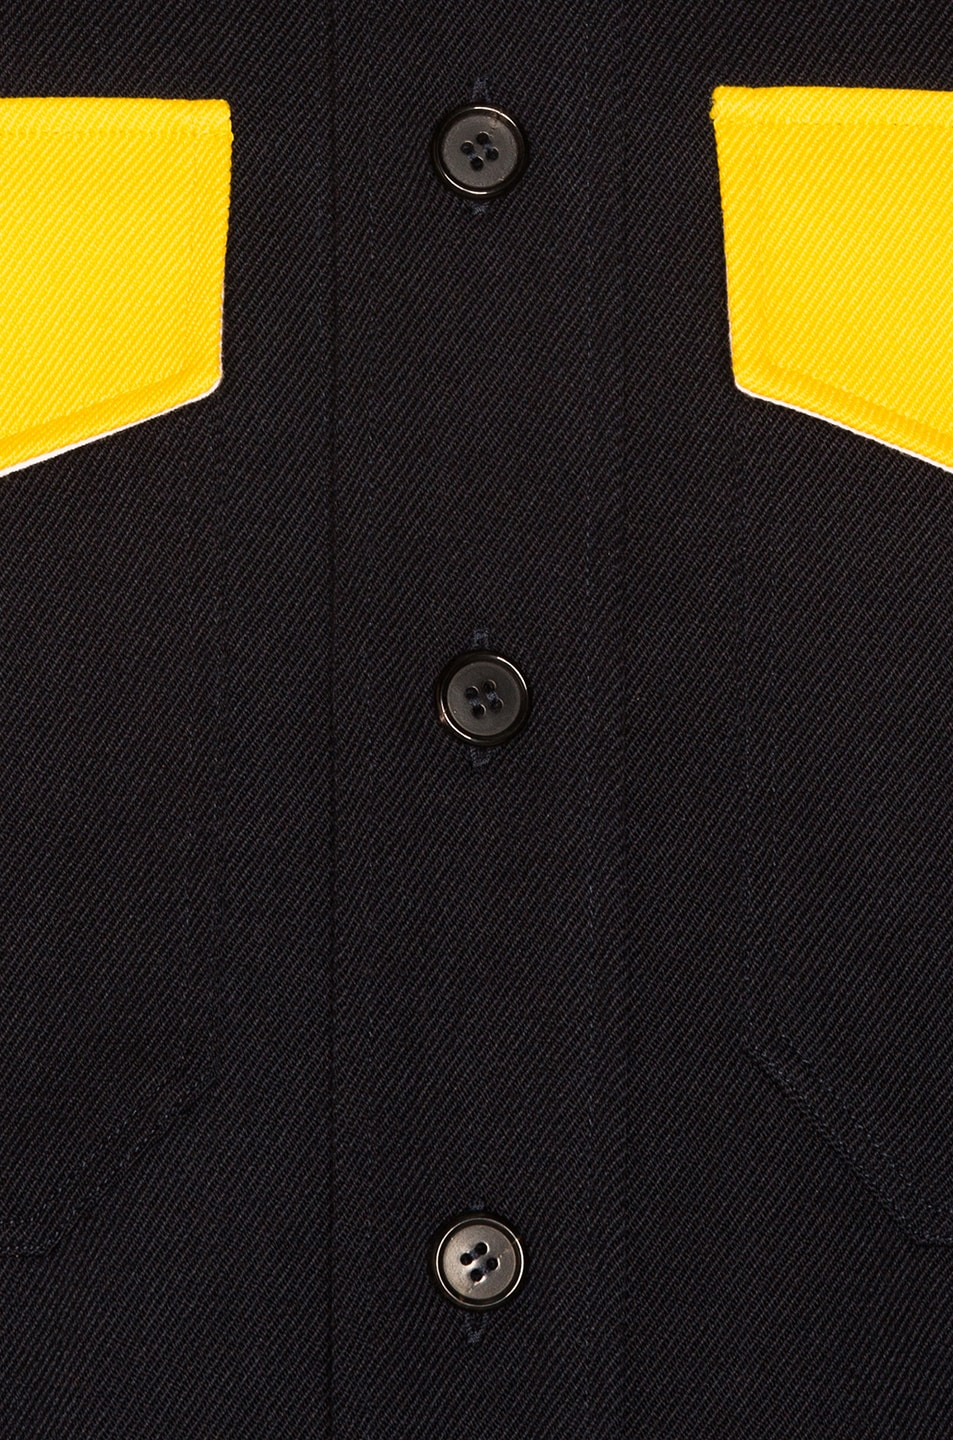 Image 5 of CALVIN KLEIN 205W39NYC Long Sleeve Shirt in Dark Navy & Yellow